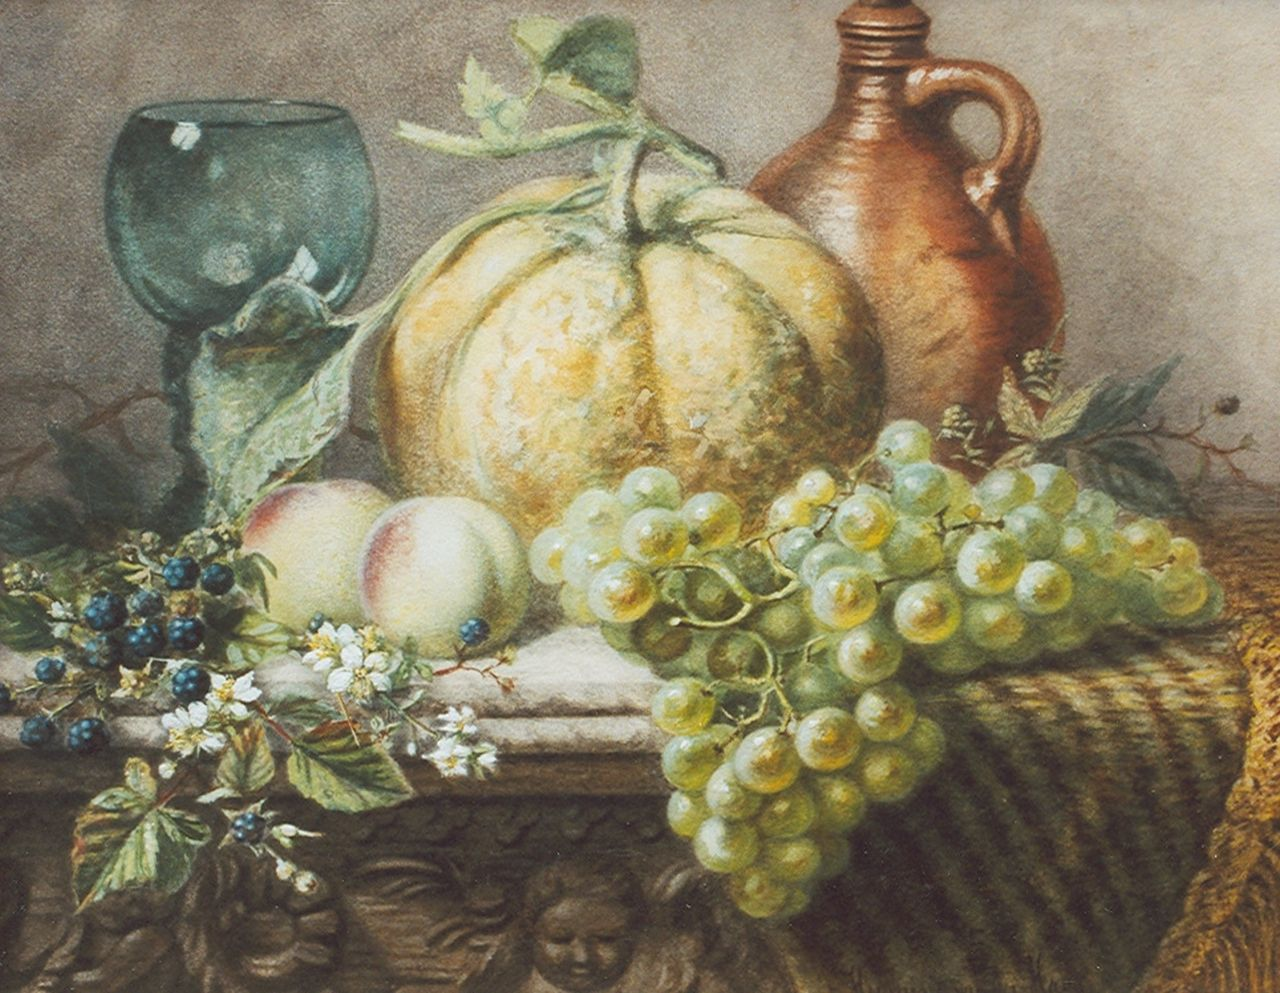 Charlotte Petronella 'Hermina' van der Haas | Still life with fruit and a rummer, watercolour on paper, 39.1 x 48.8 cm, signed l.r.